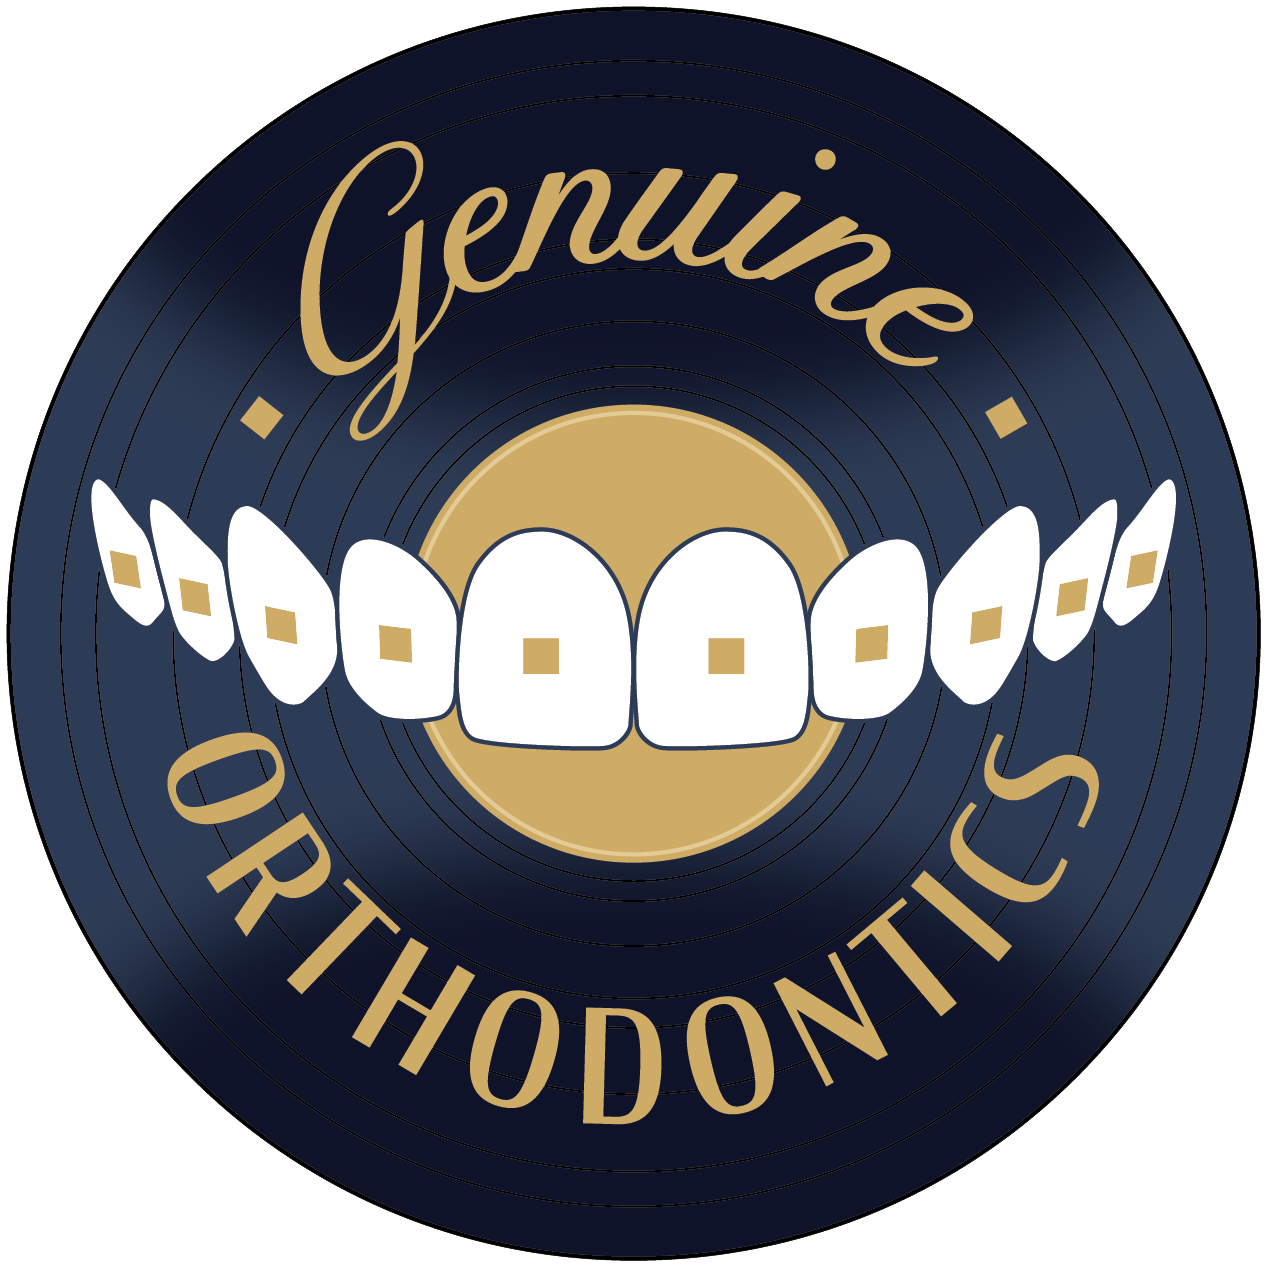 Genuine Orthodontics